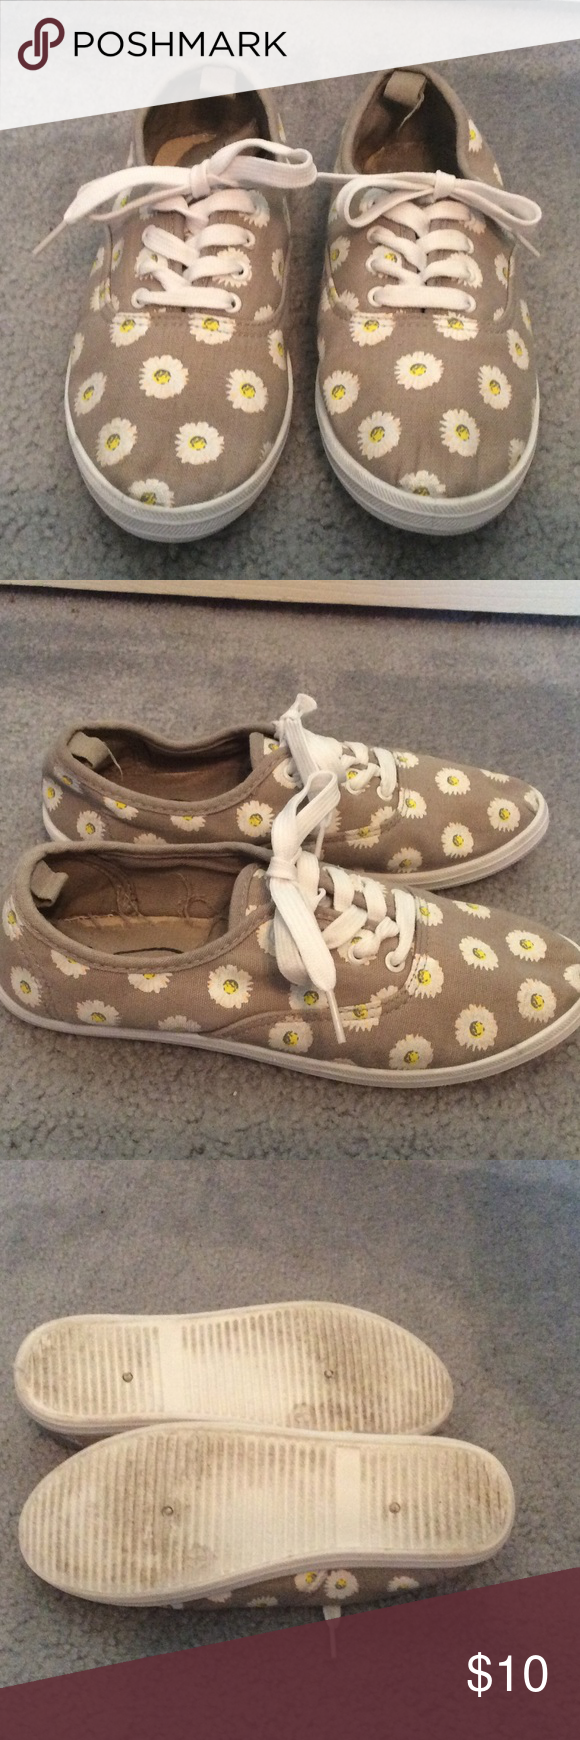 canvas shoes canvas tennis shoes from rue 21 size m